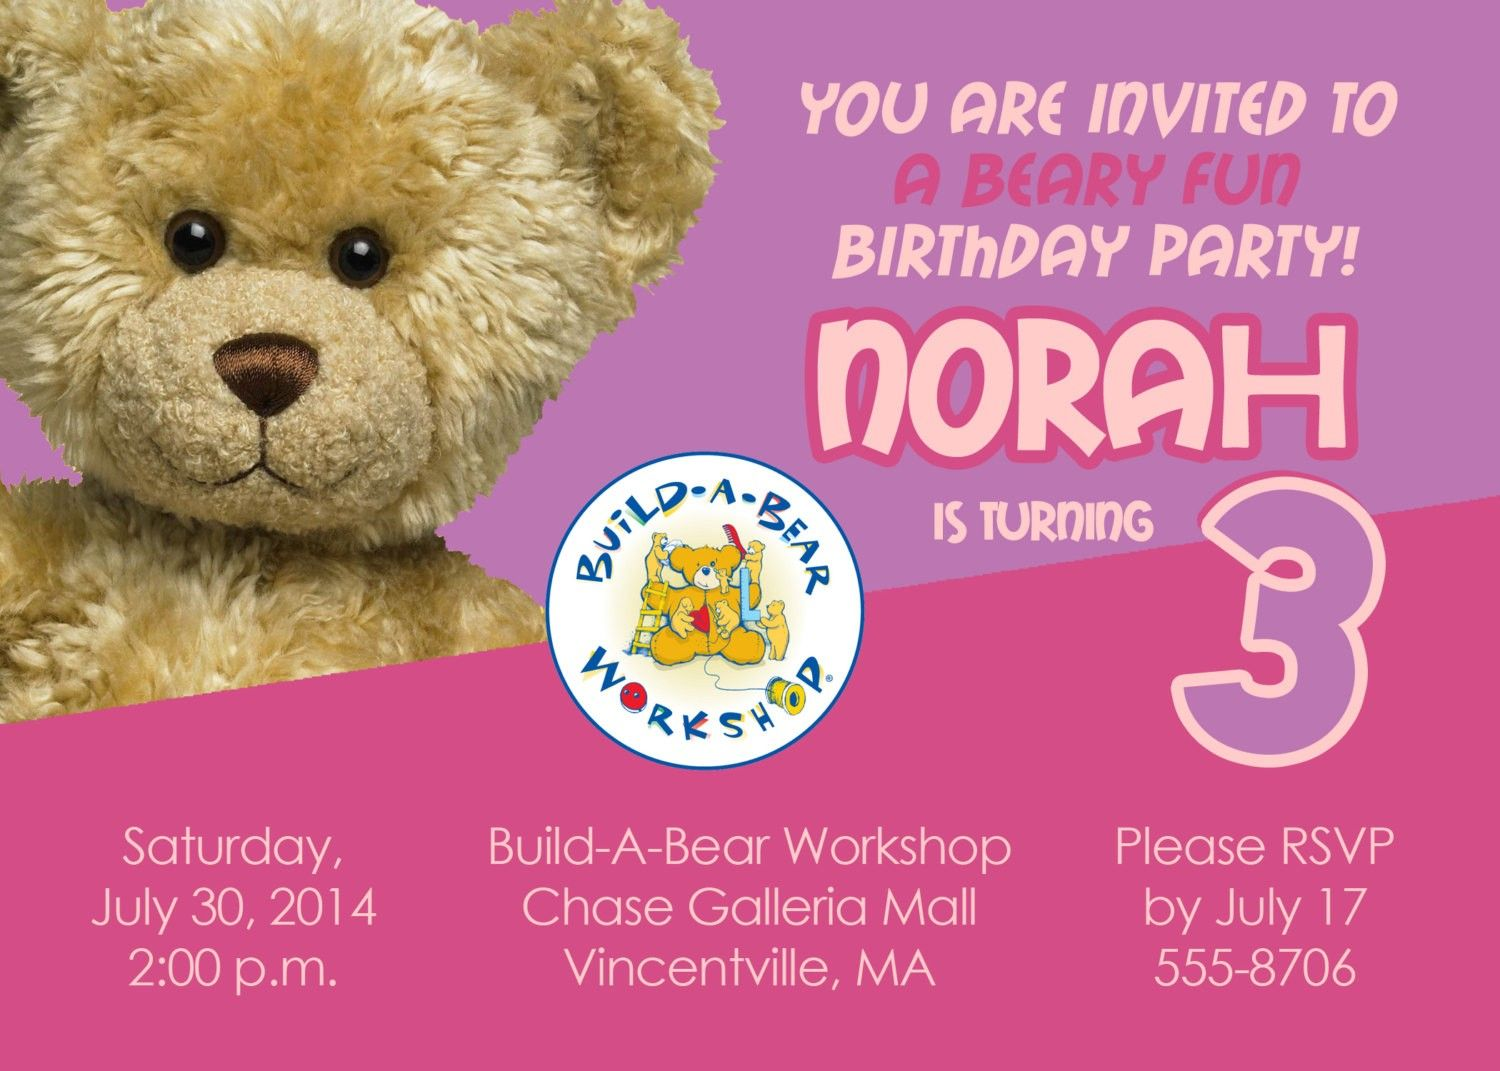 Build A Bear Party Invitations tiki party invitations – Build a Bear Invitations Birthday